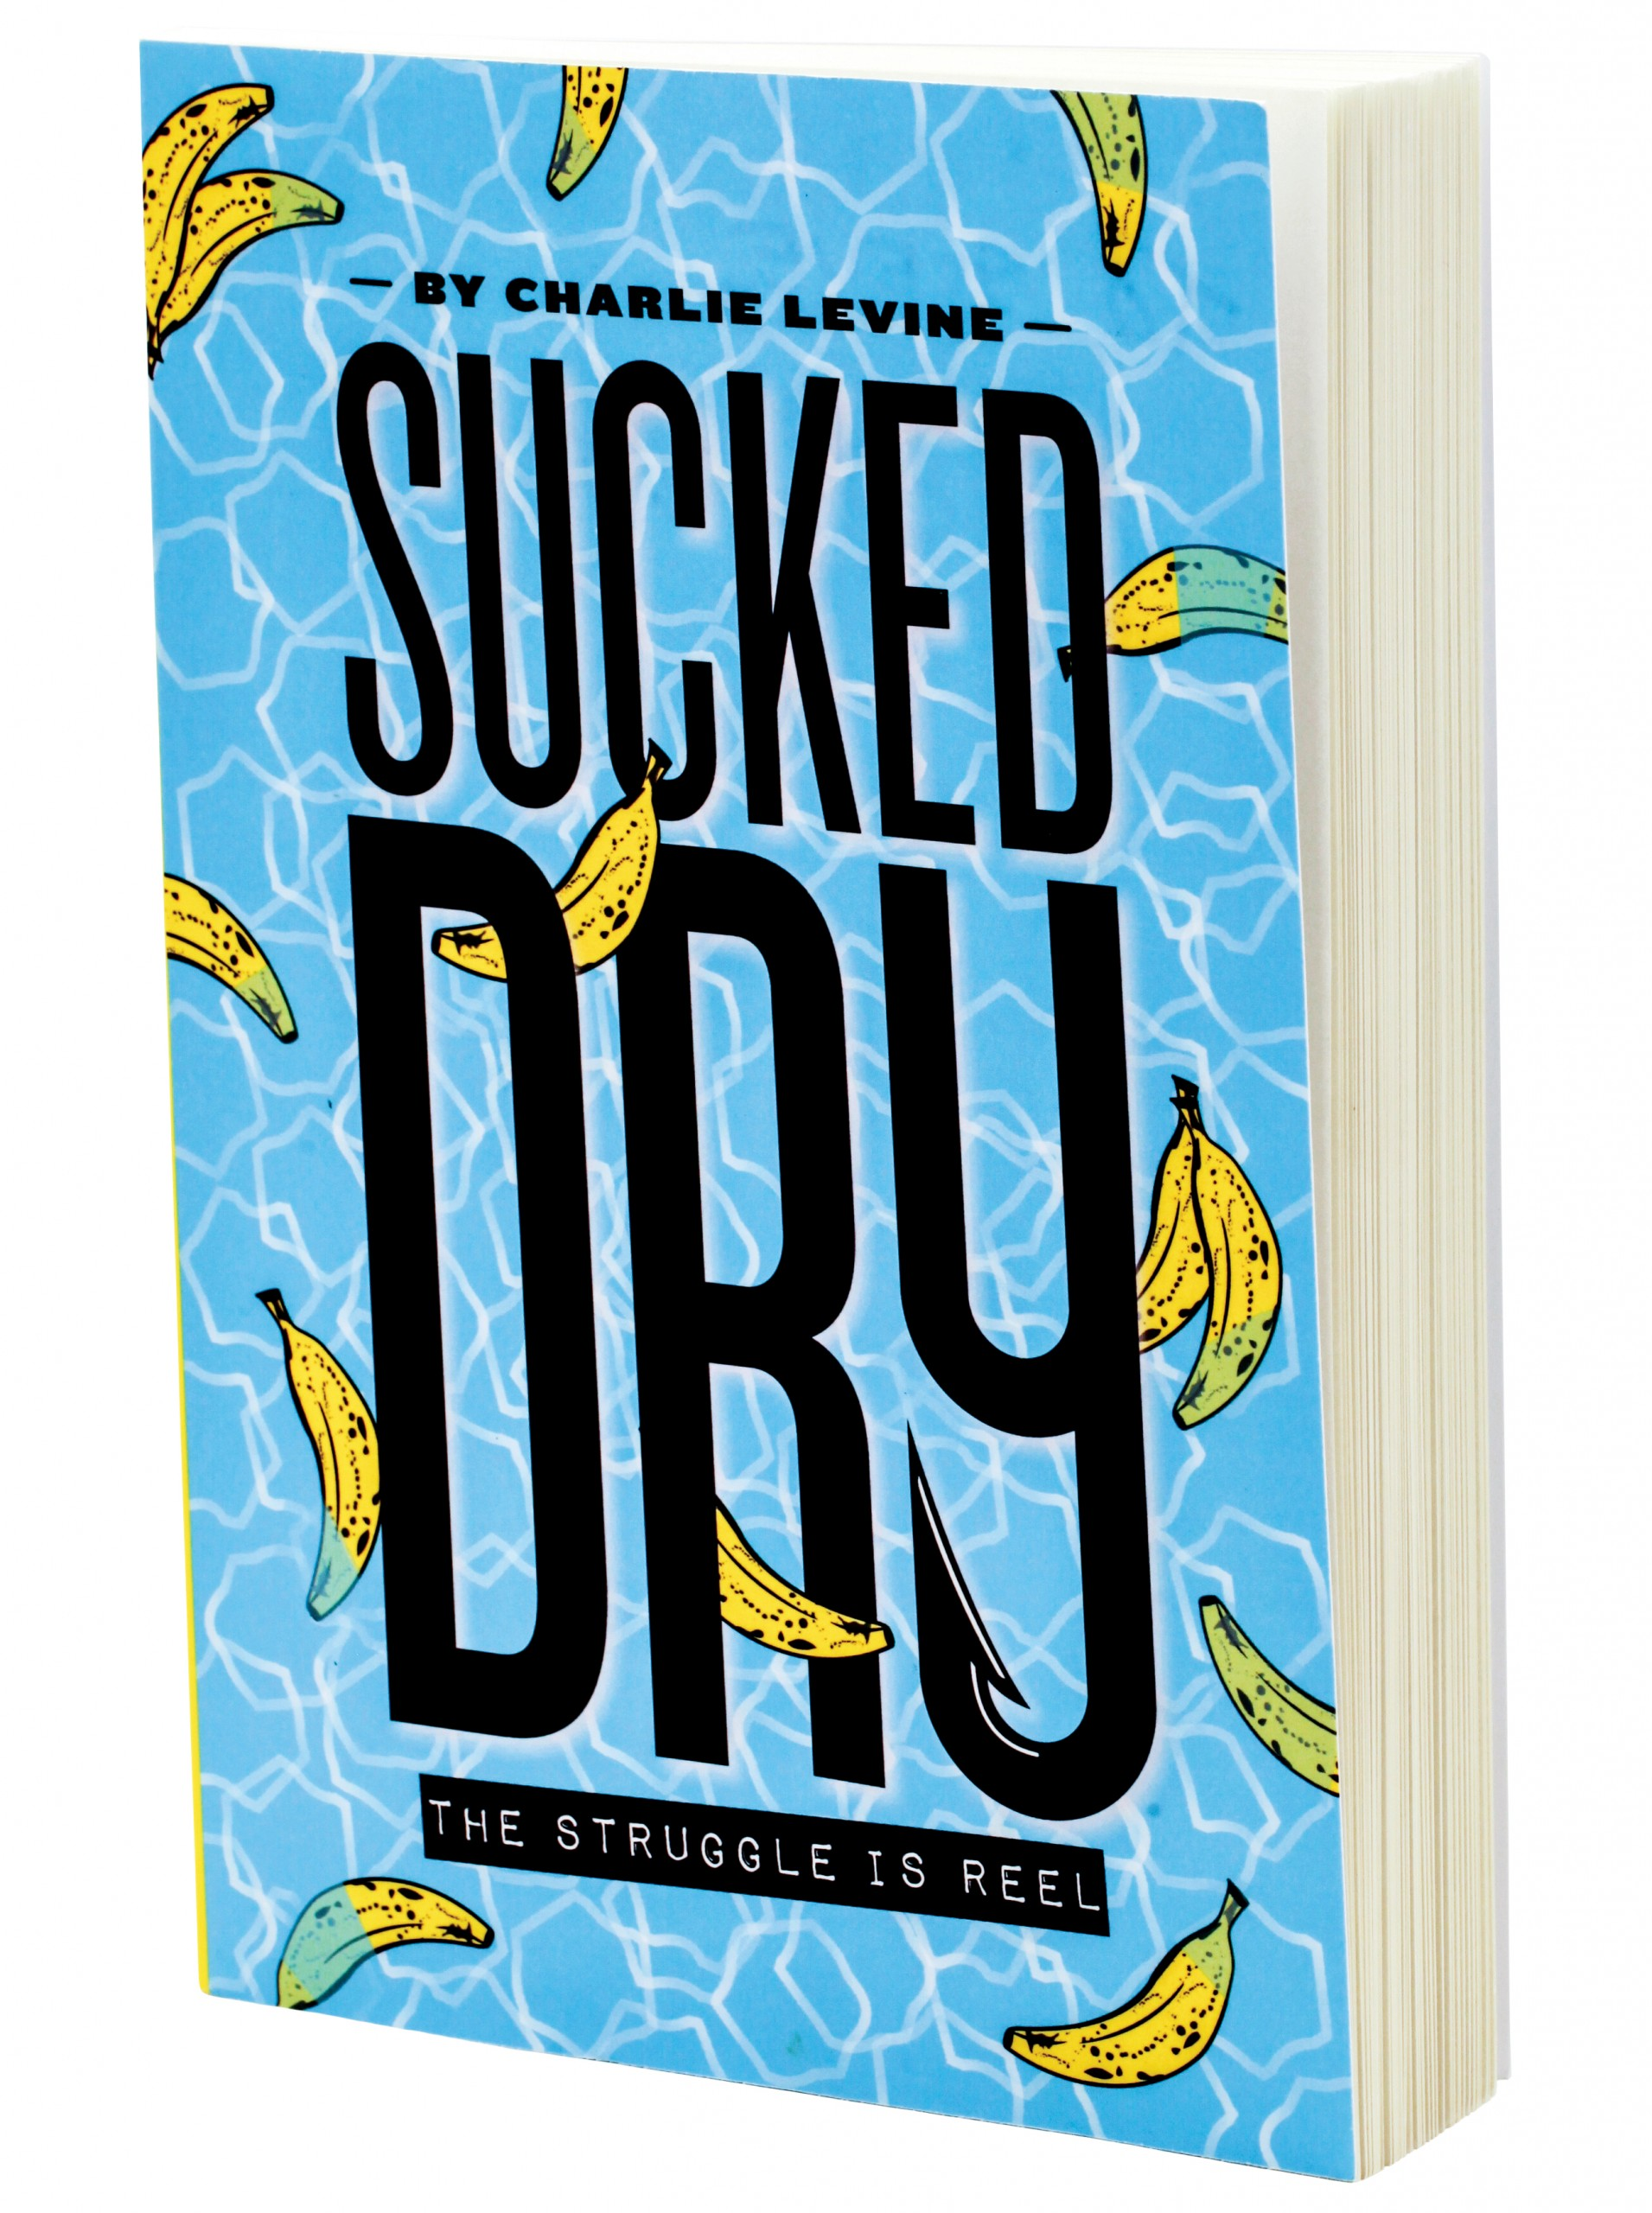 Sucked Dry book